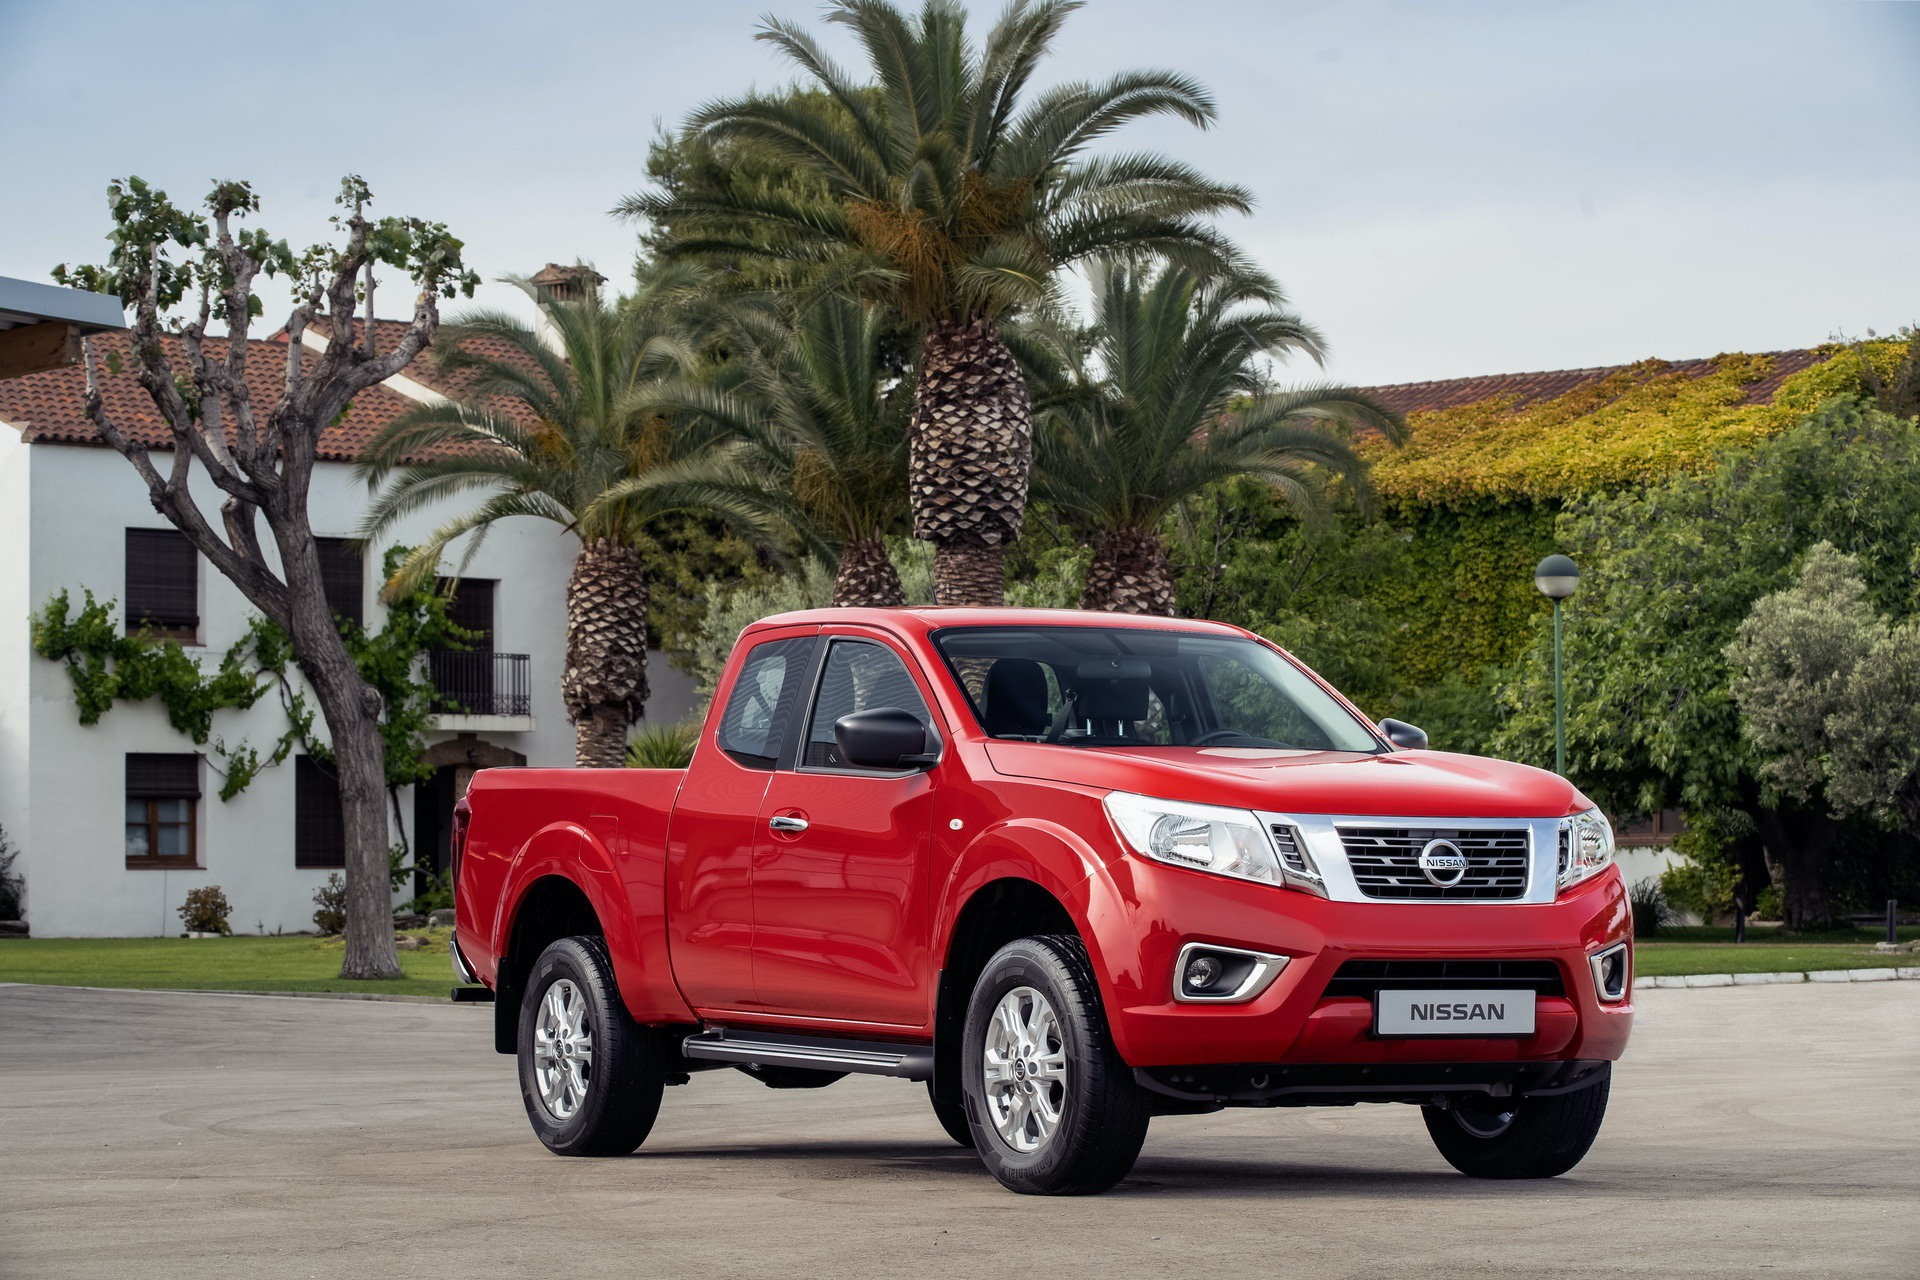 Nissan-Navara-King-Cab-Red-Front